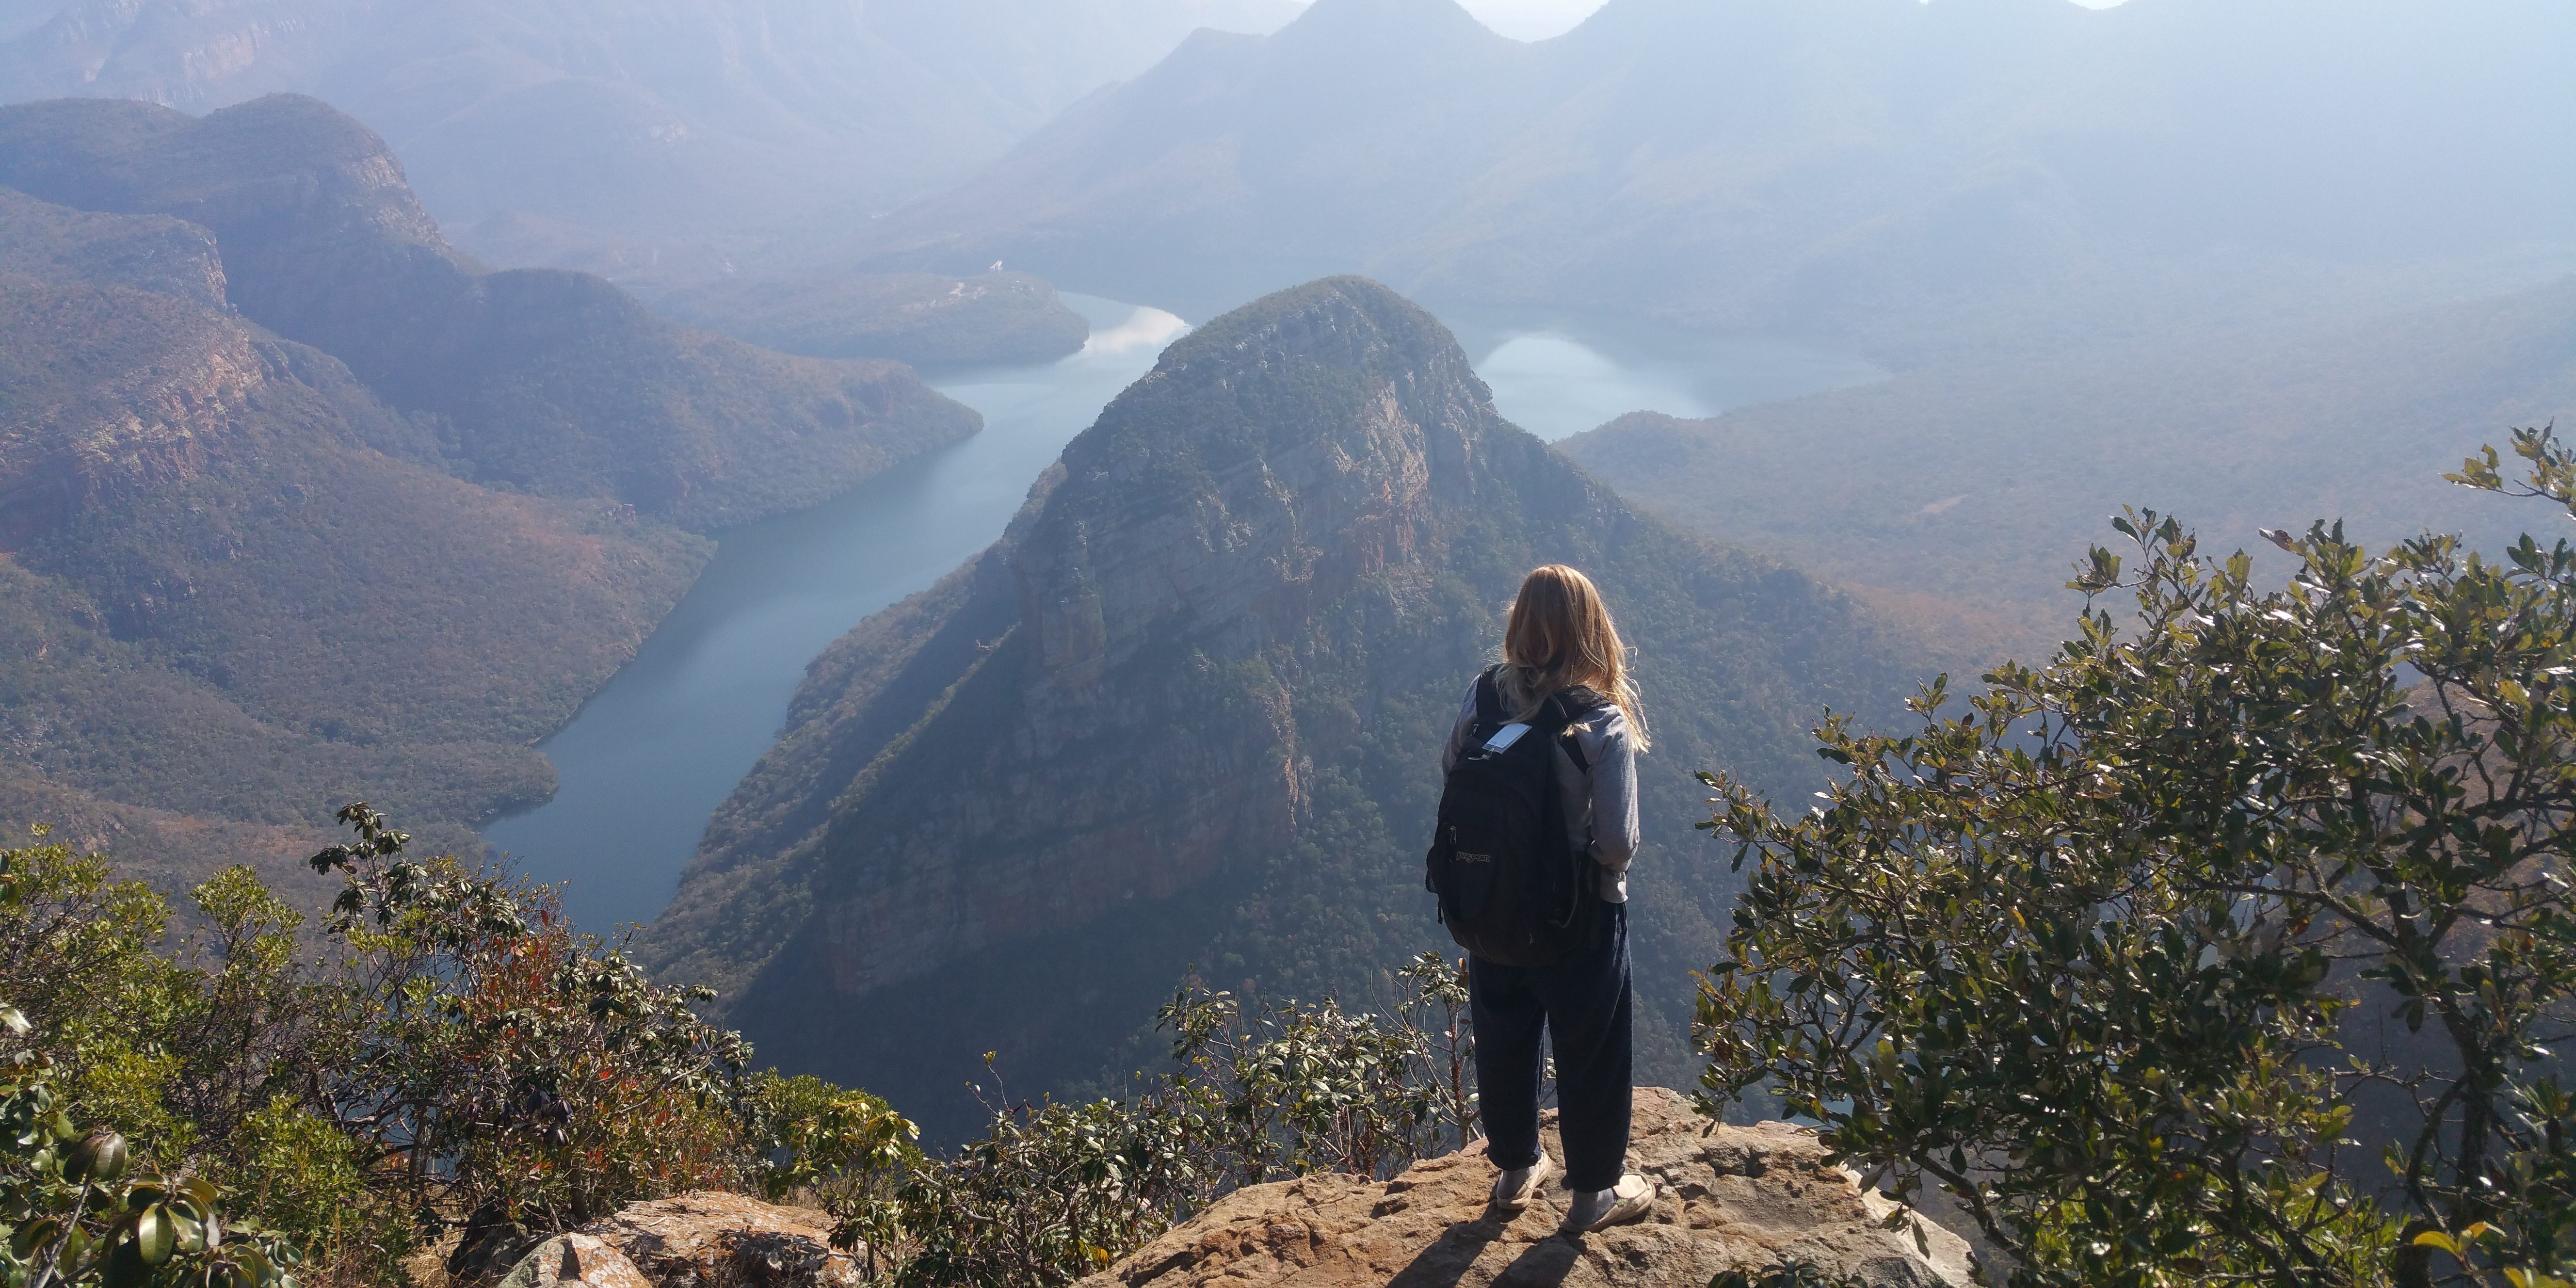 As part of efforts to become a global citizen, this GVI participant focuses on slow and mindful travel.